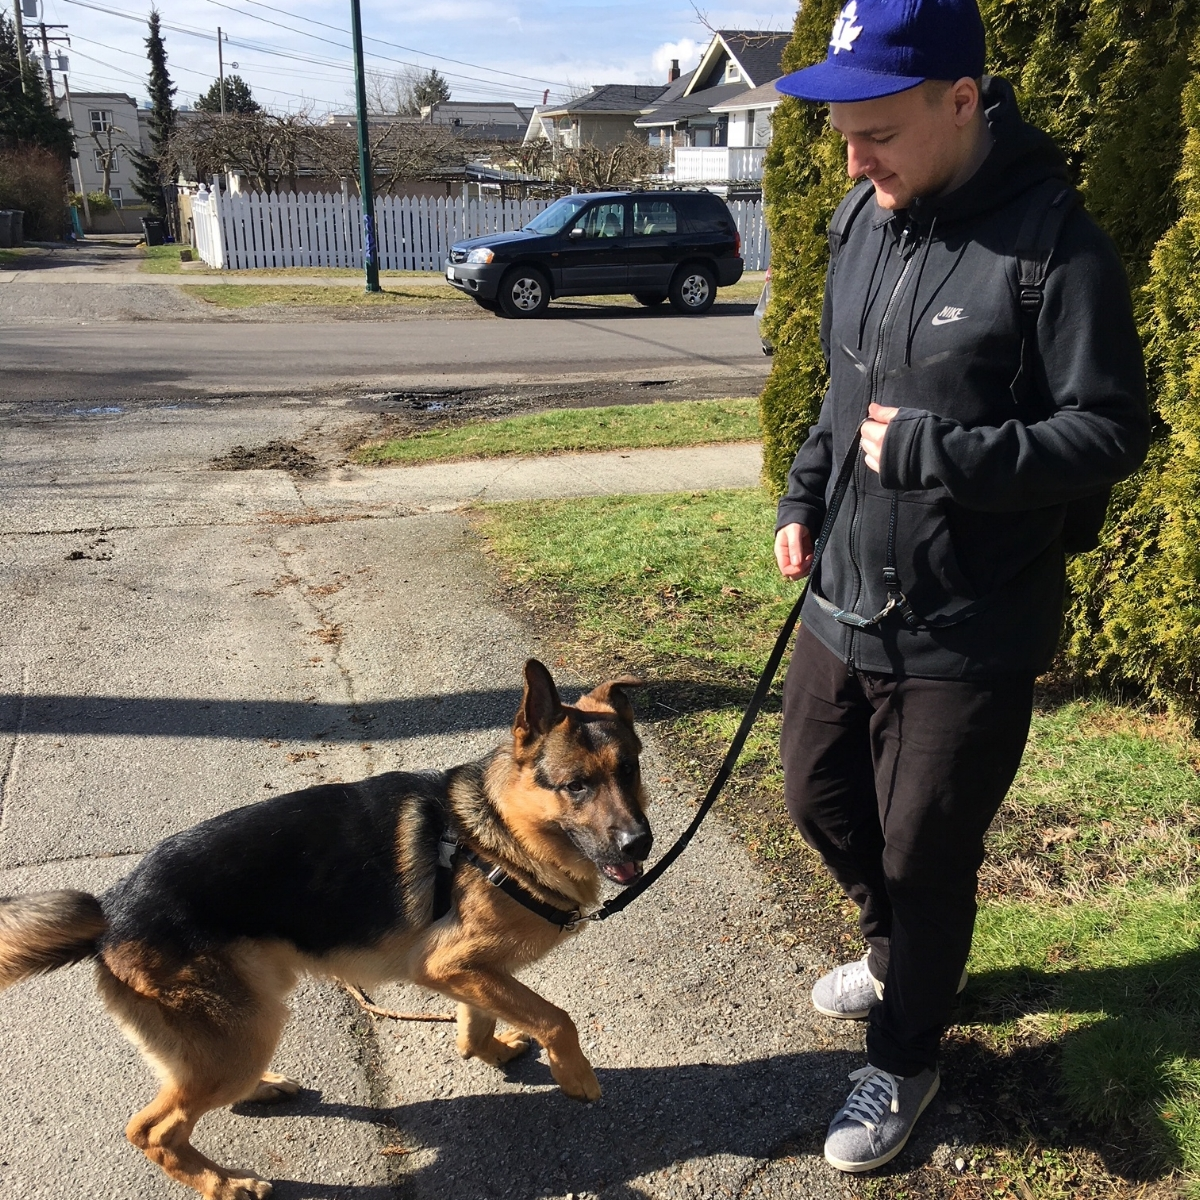 Hi! I'm Eamonn. - I grew up in Hastings Sunrise and when I'm not playing hockey or cheering on the Leafs I enjoy visiting all of the awesome parks in our neighbourhood with my own high energy dog, Elvys. I've always been a dog person and love getting to spend time with all of my furry clients! I also have my Dogsafe Canine First Aid certification.